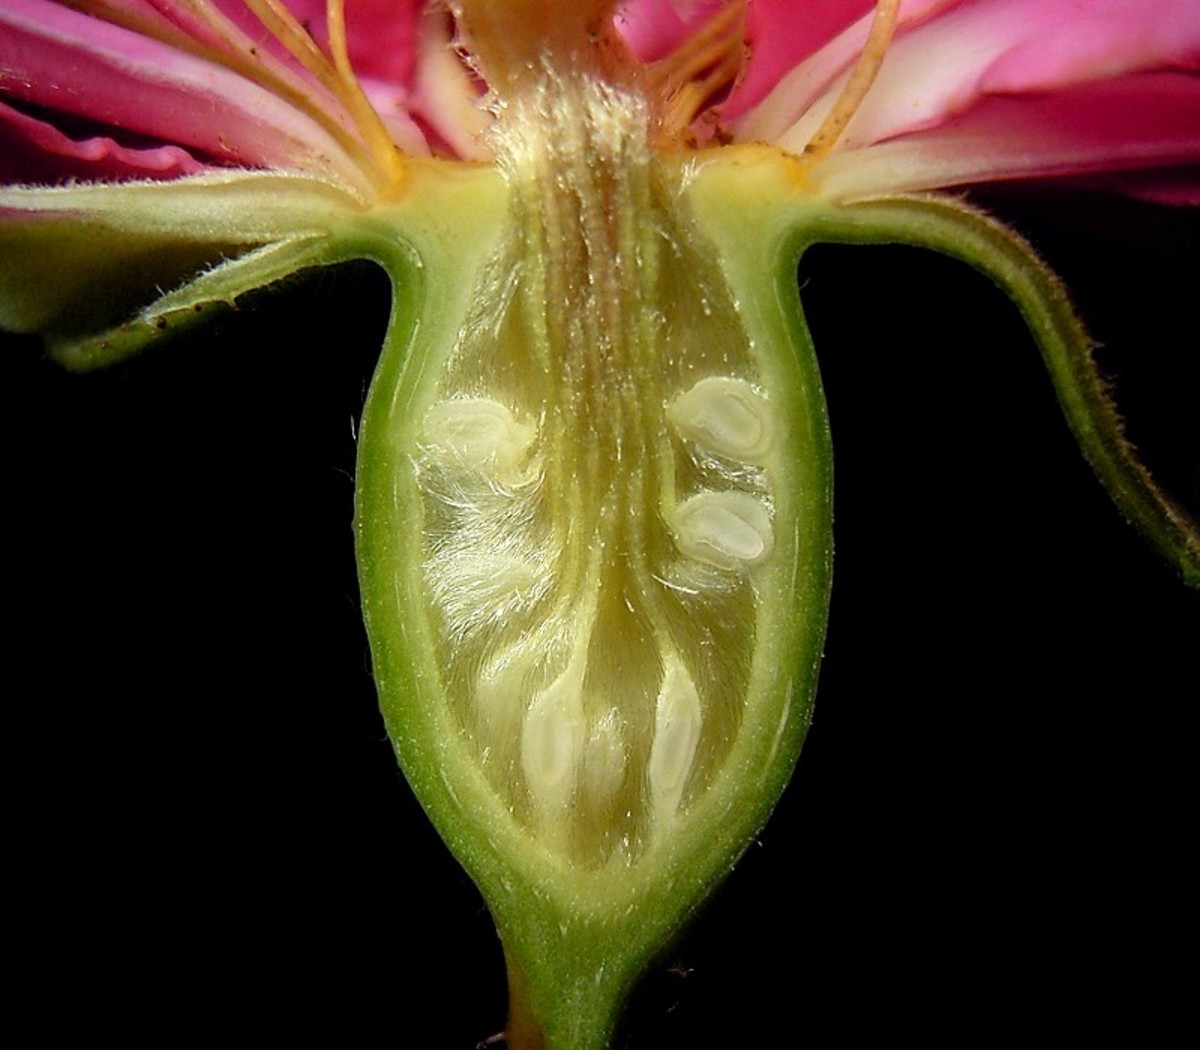 A rose pistil with the stigma that captures the pollen not shown, the pollen then travels down the pollen tubes of the style (stalks) to the ovary (ovule, white).